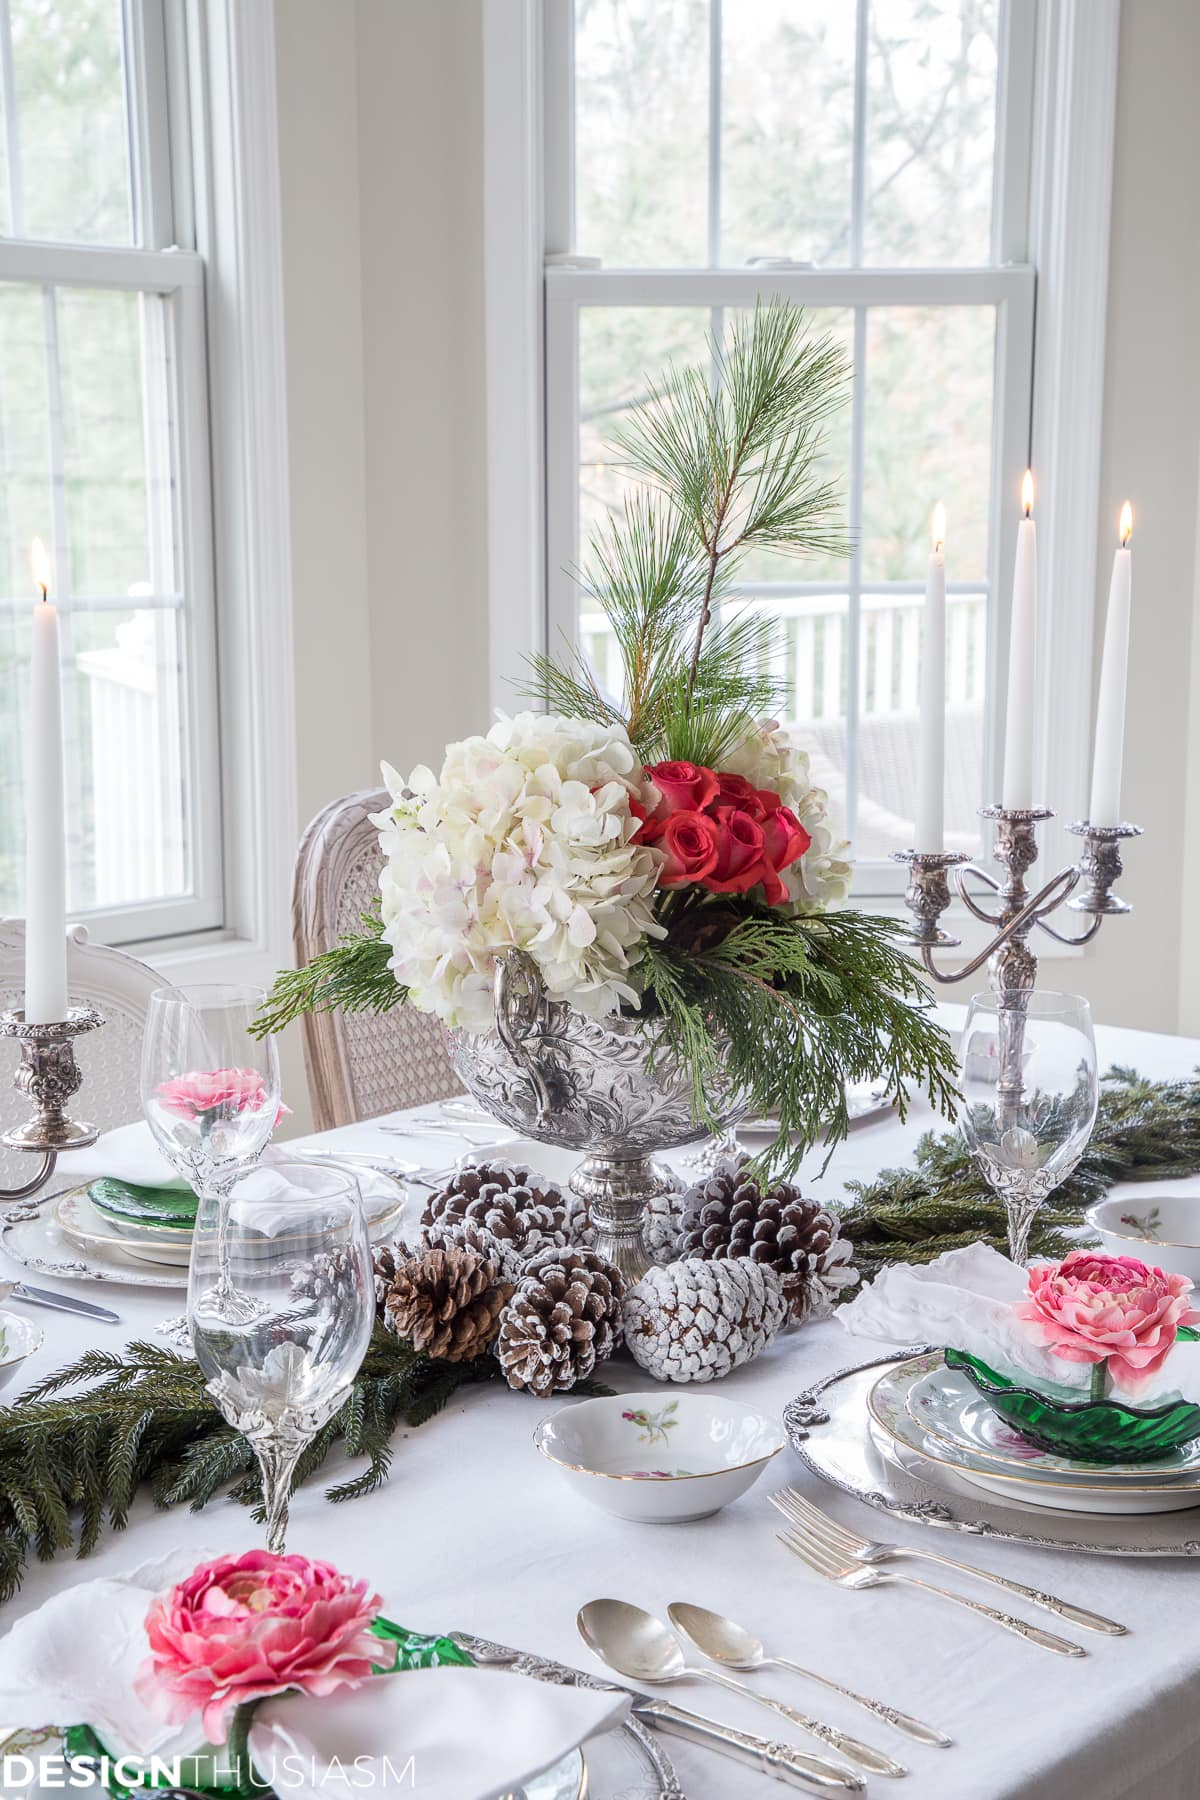 5 Ways to Create Elegant Christmas Table Settings in the Kitchen